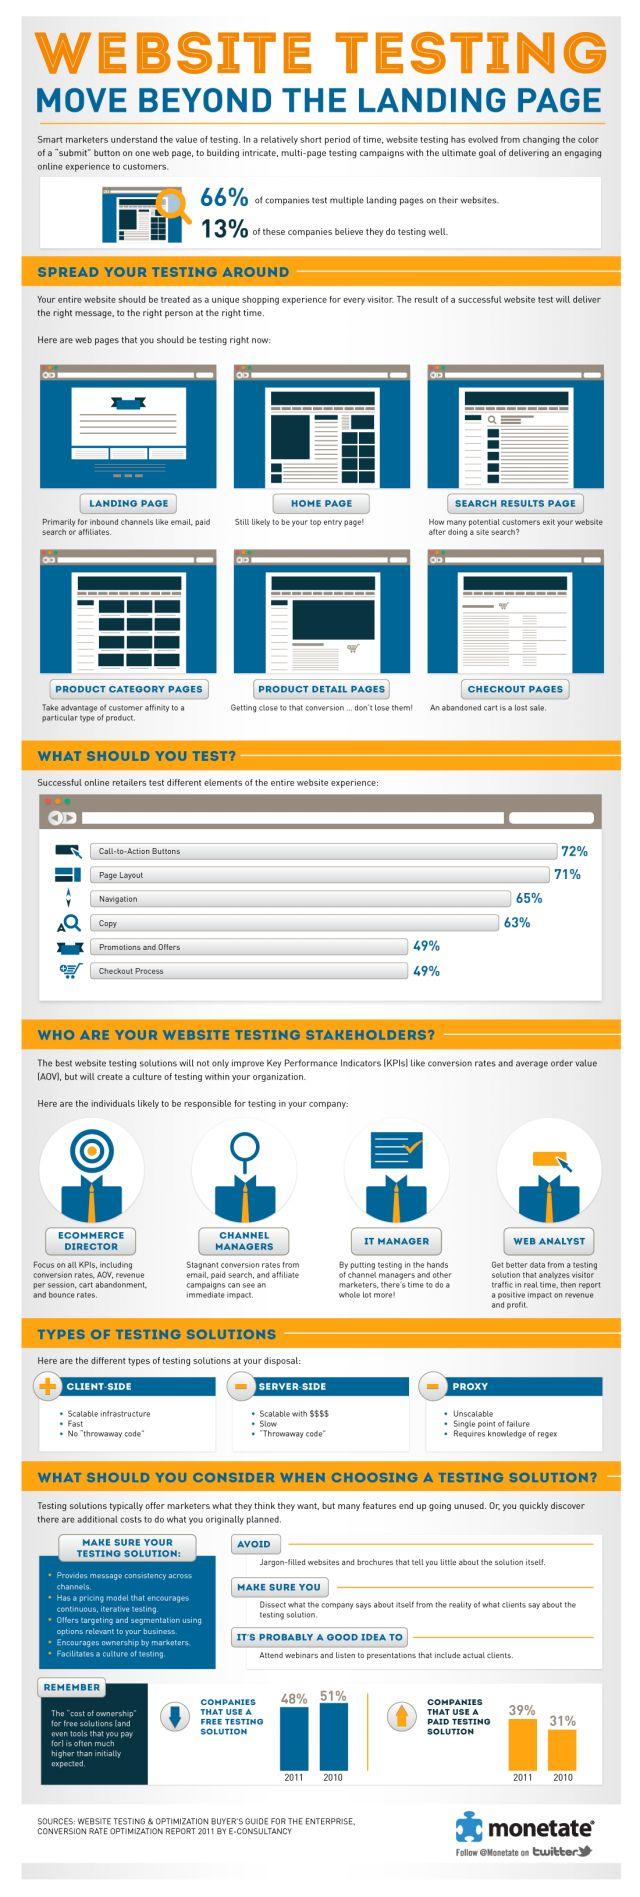 Infographic: Website Testing Beyond the Landing Page | Marketing Technology Blog